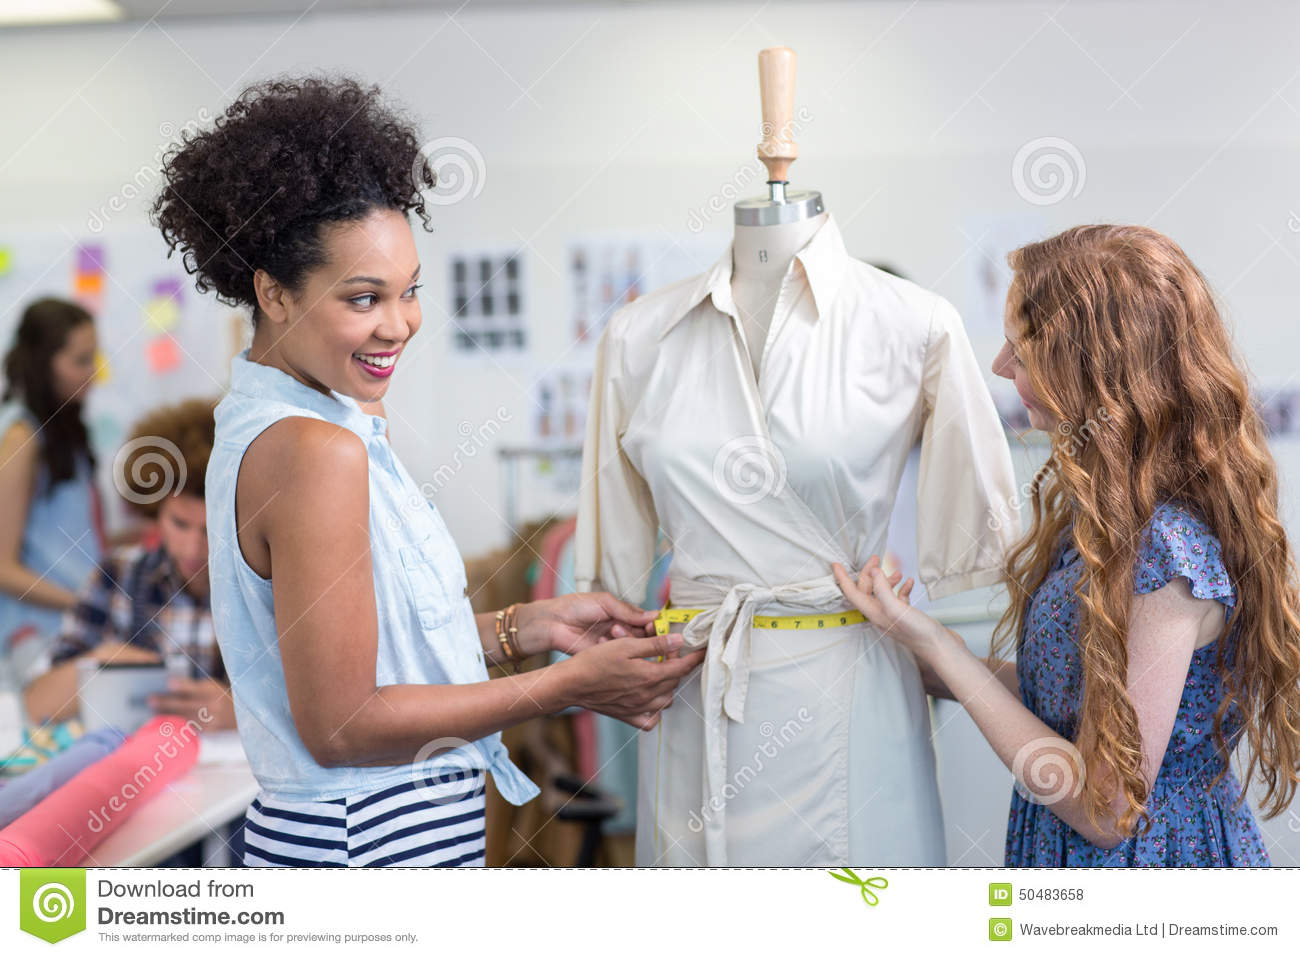 Female Fashion Designers At Work Stock Photo Image 50483658